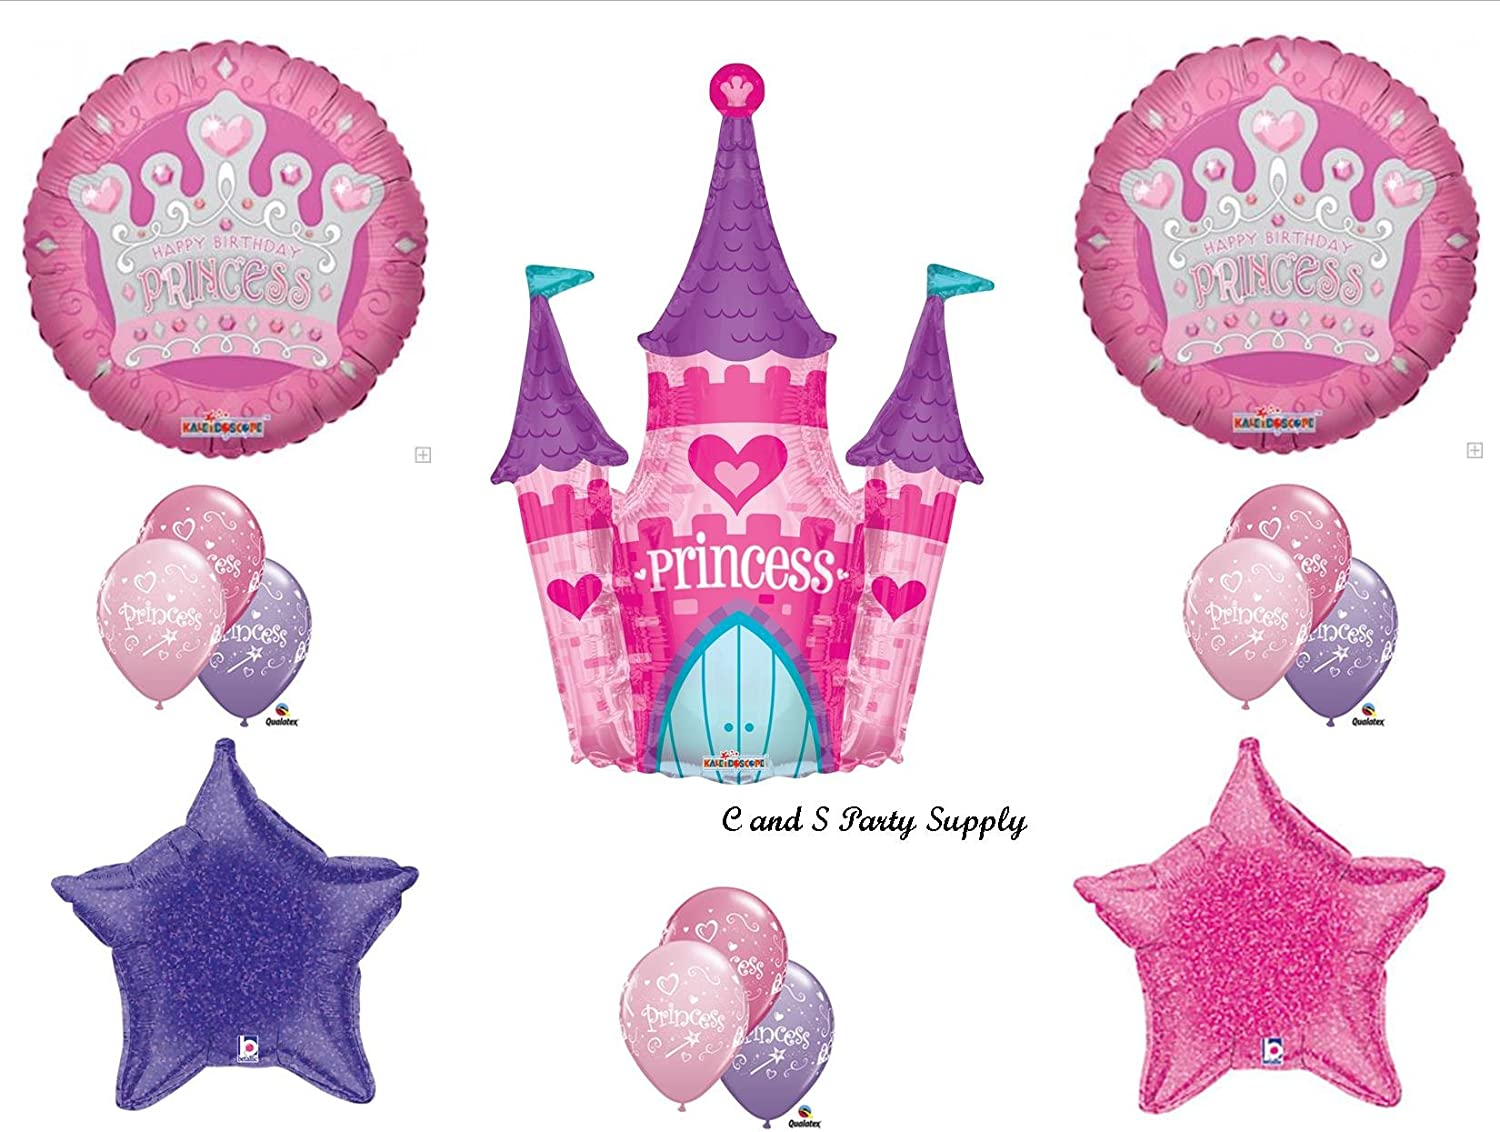 PACK 2 PINK FAIRY HAPPY BIRTHDAY EMBELLISHMENTS FOR CARDS OR CRAFTS